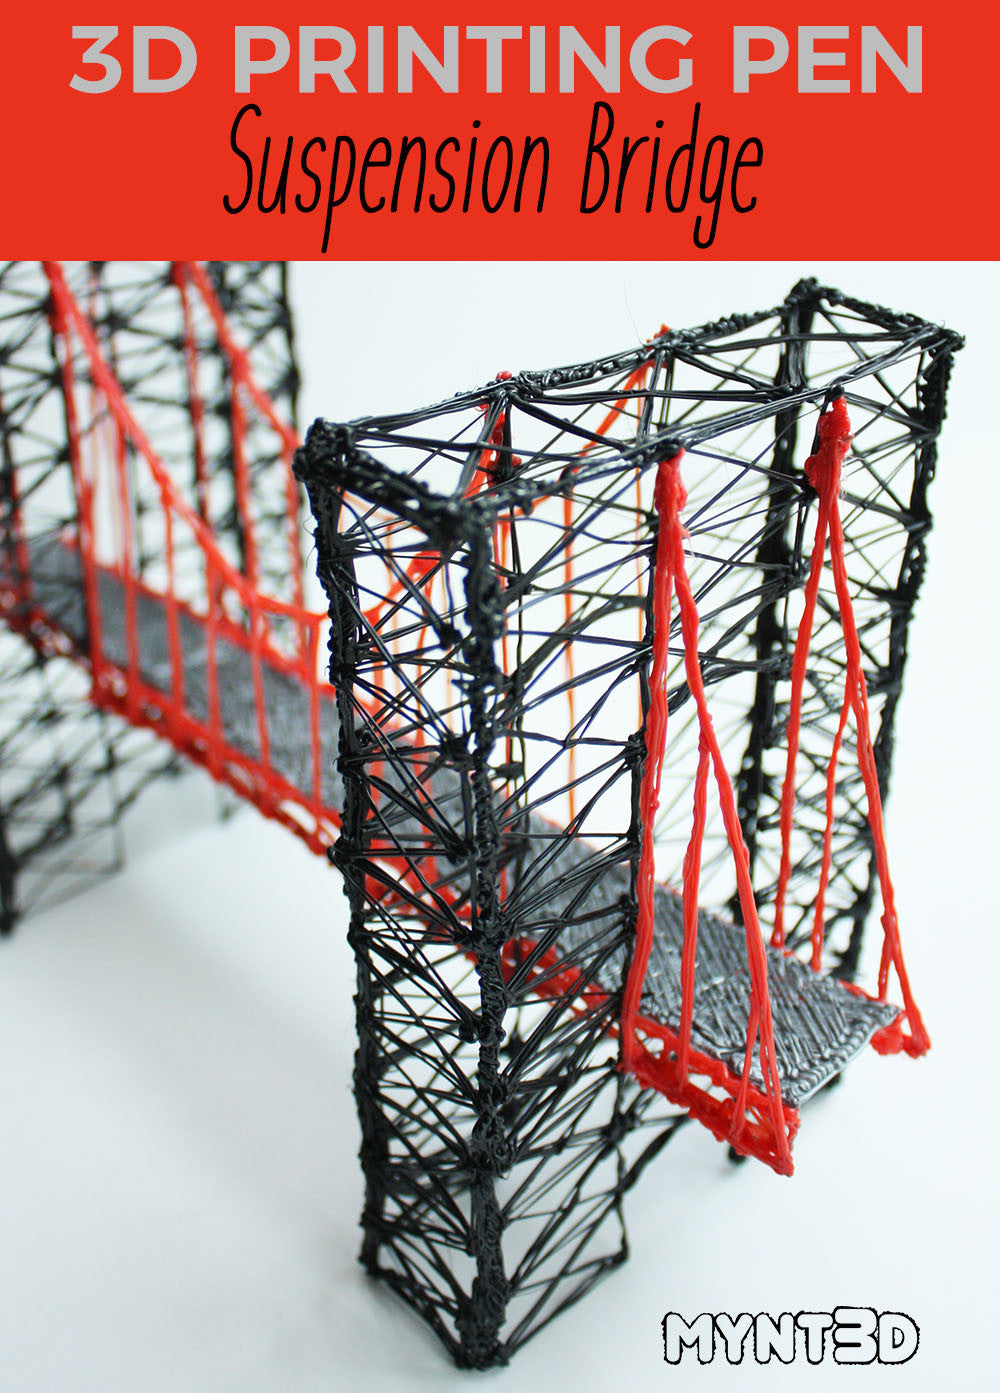 Suspension Bridge Made with a 3D Printing Pen